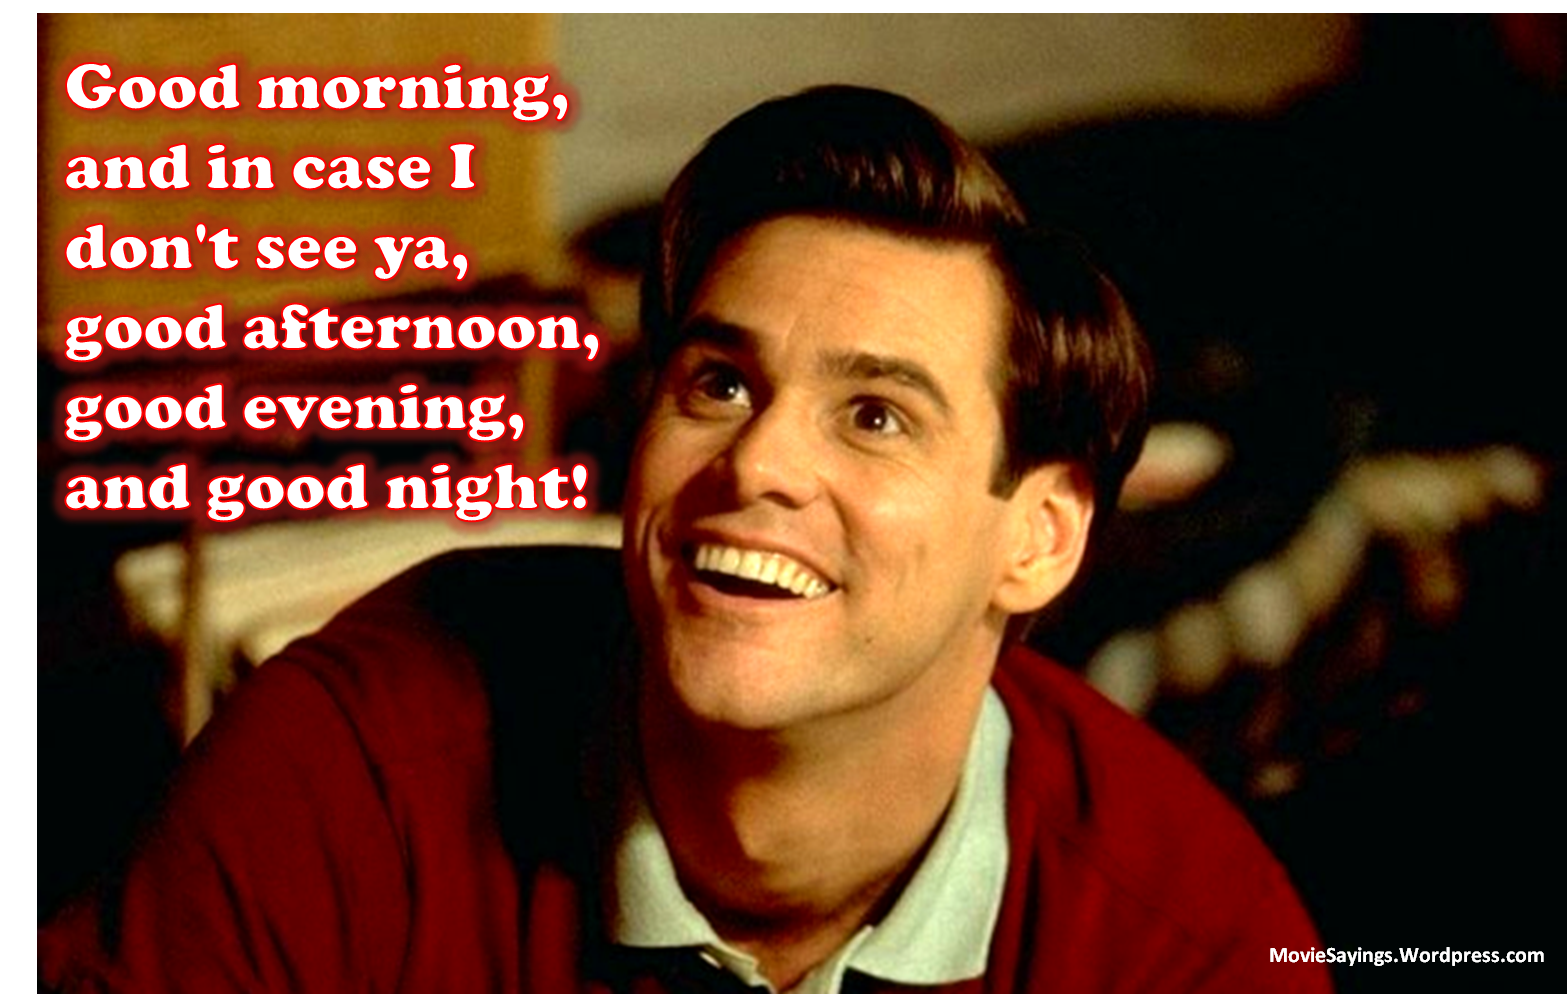 funny movie quotes Truman Good morning, and in case I